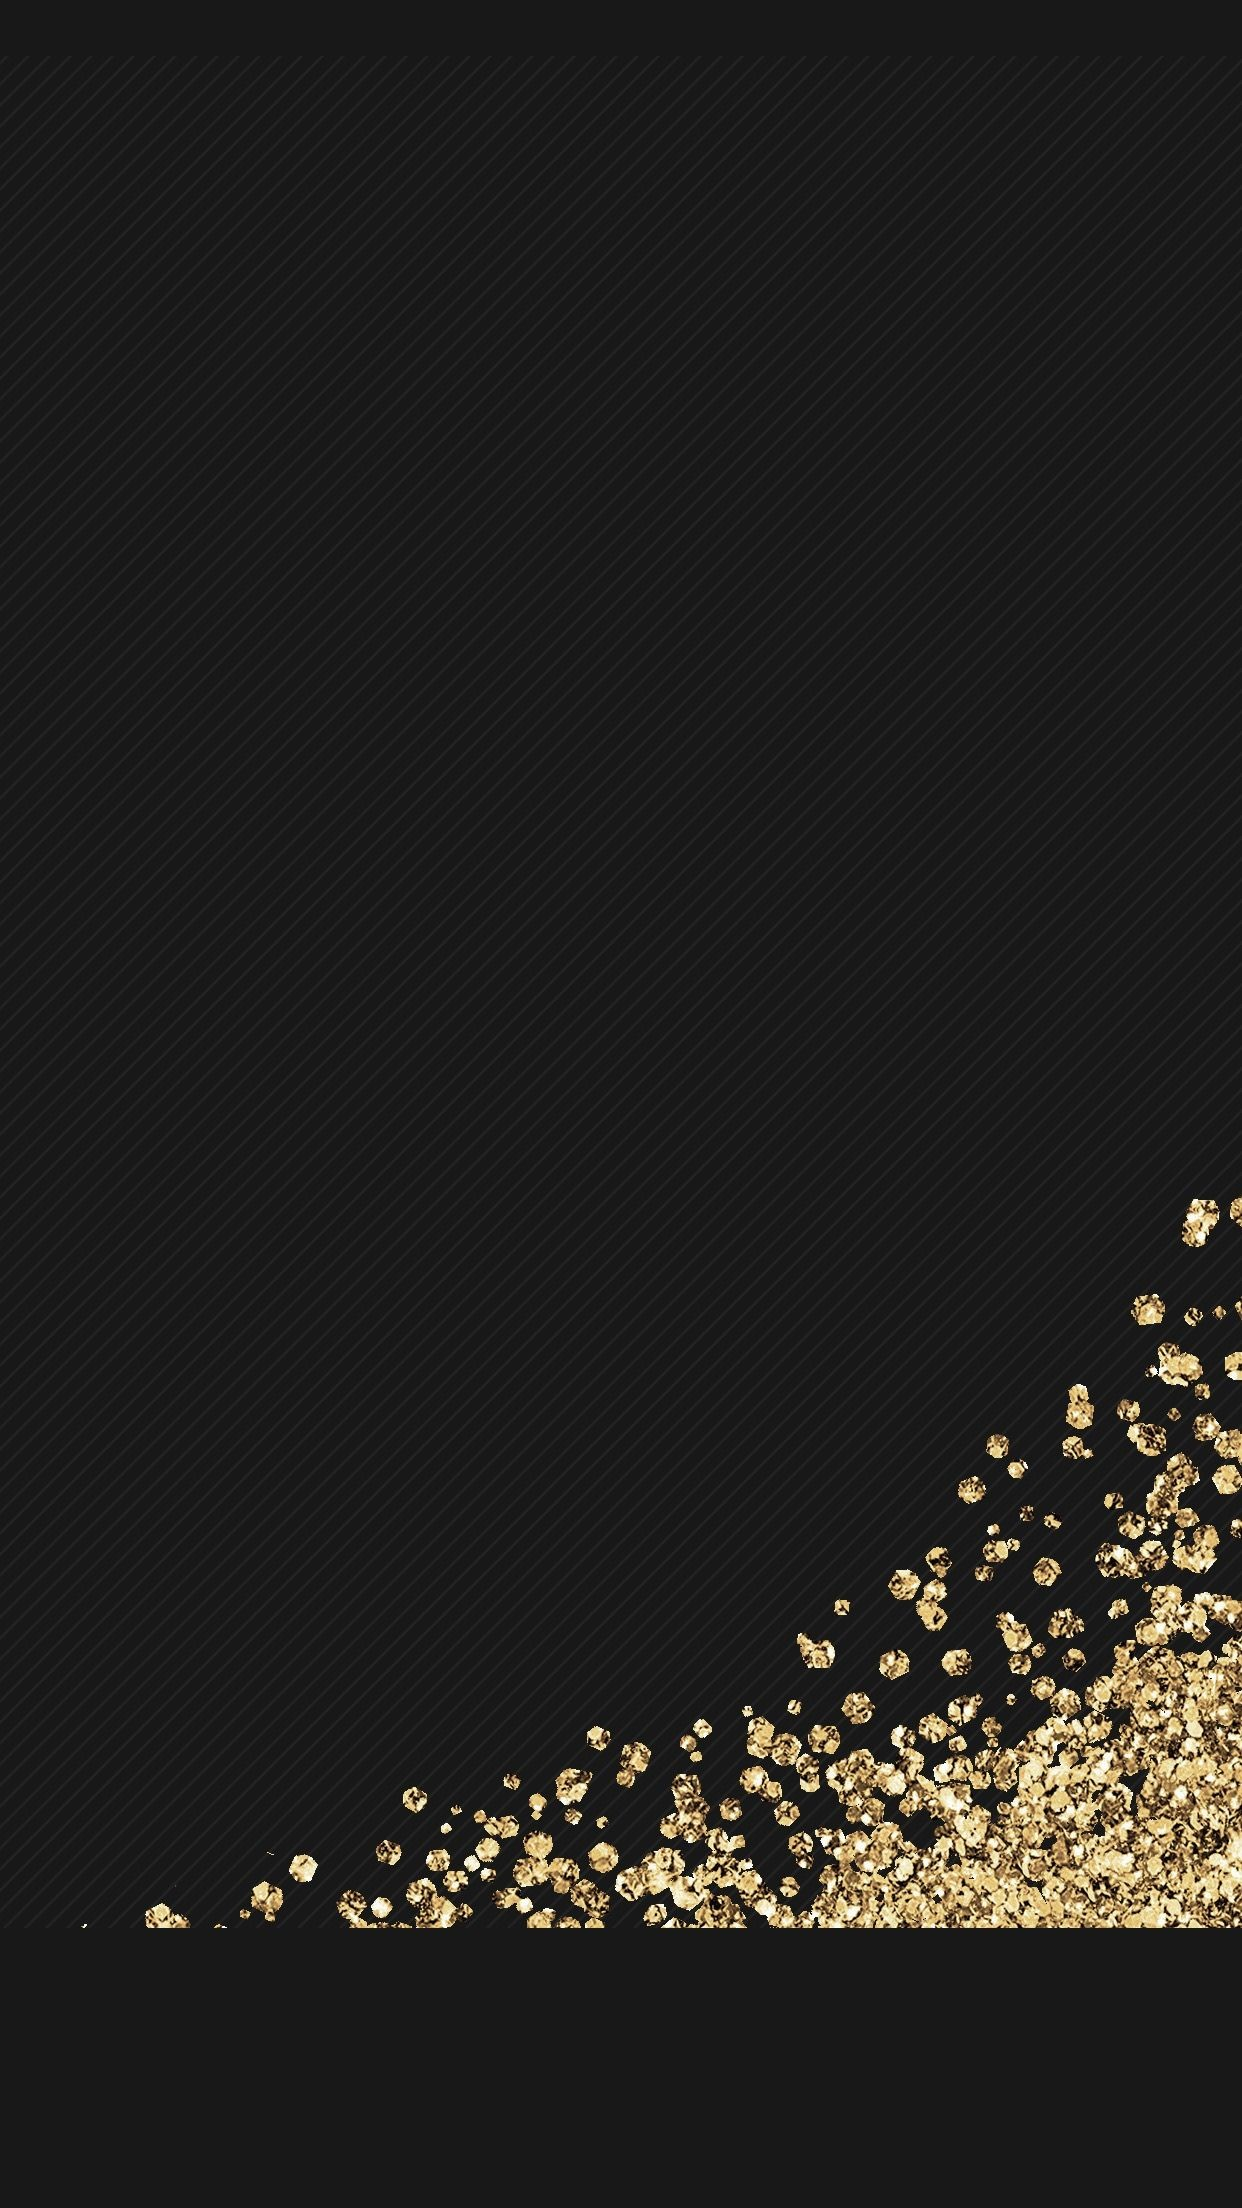 1242x2208 black, gold, glitter, wallpaper, background, iphone, android, HD